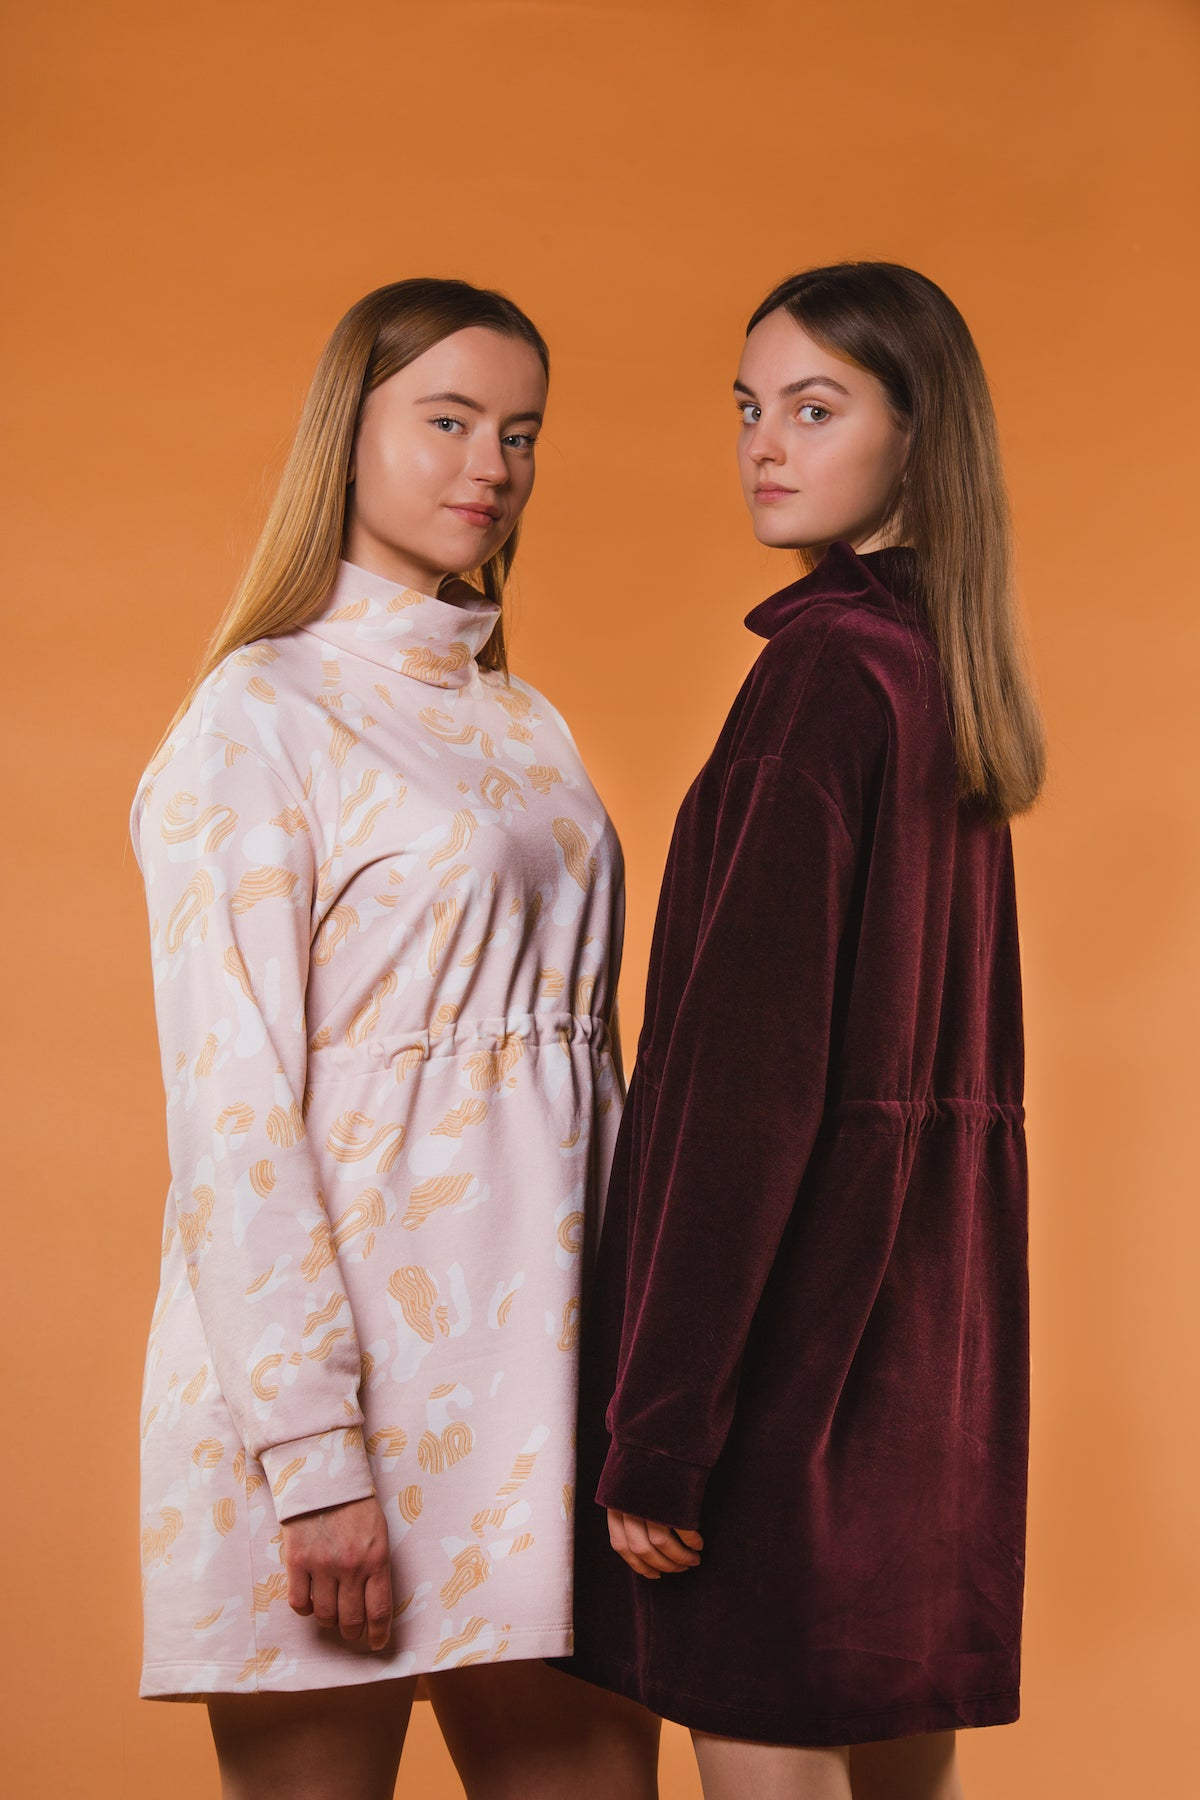 New collection of eco friendly clothing inspired by the Lappish light and landscapes - MORICO slow fashion from Finland